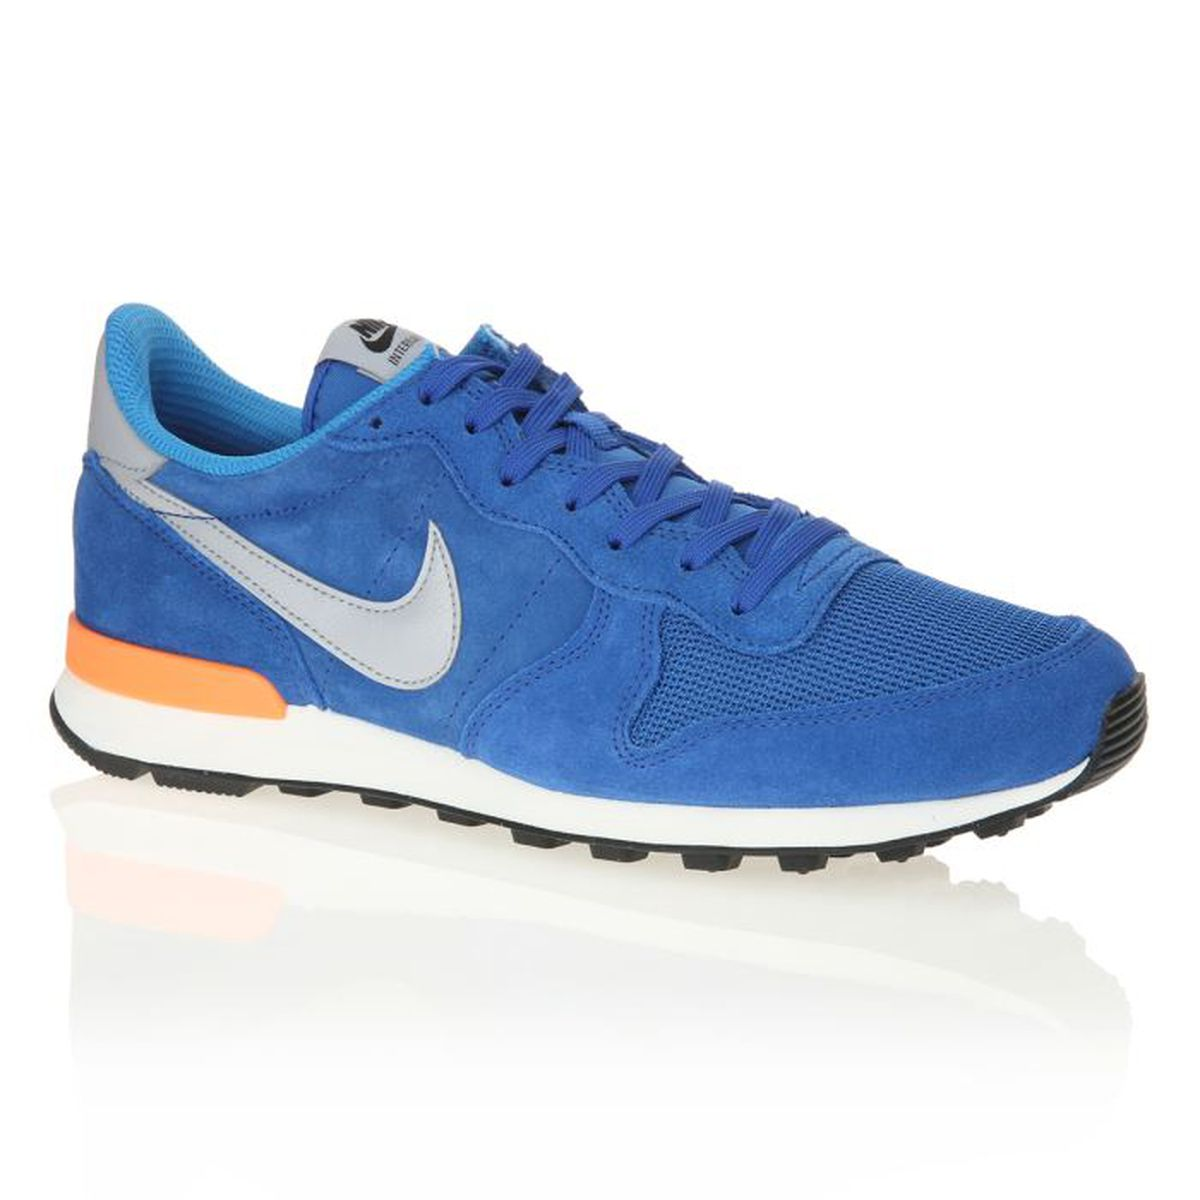 on sale 0993a cdb5f BASKET NIKE Baskets Internationalist Leather Homme. Baskets tige basse en  cuir ...